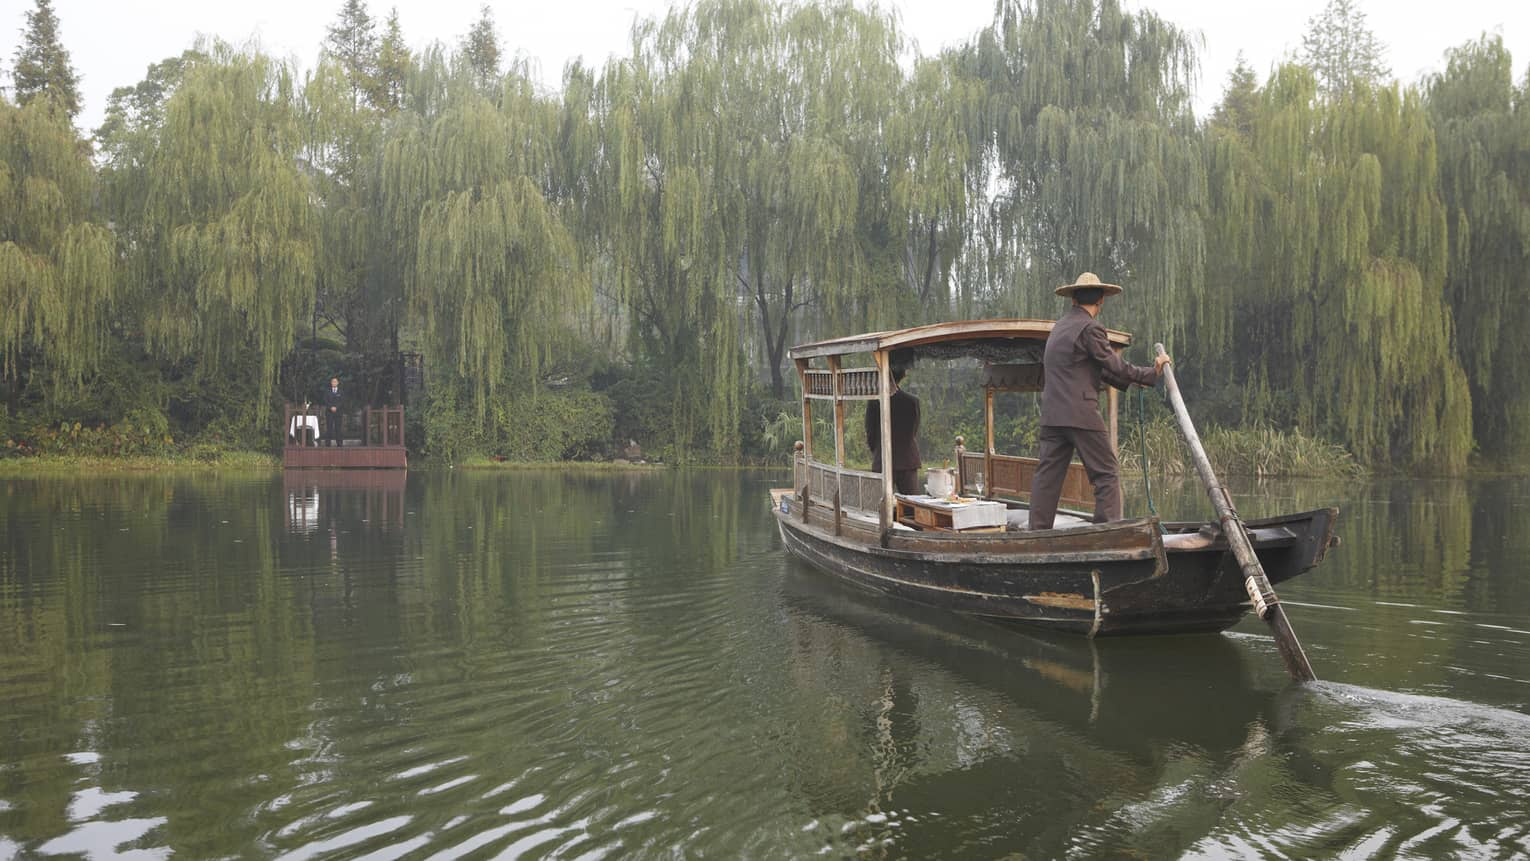 A guest arriving at a dock in Hangzhou, surrounded by weeping willows